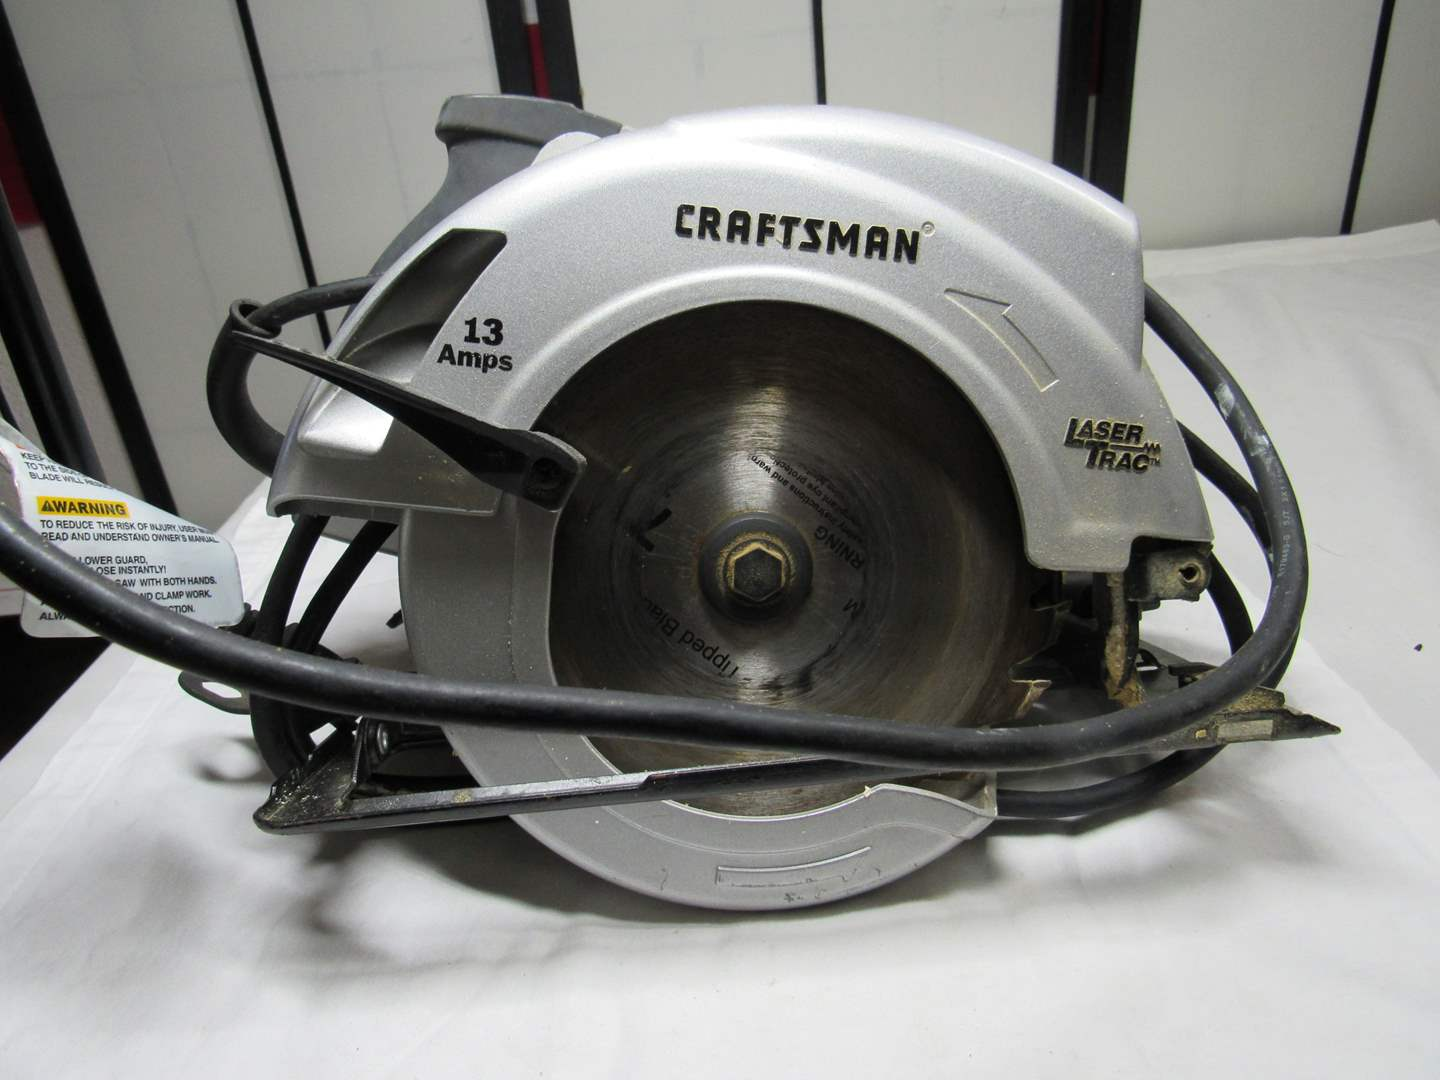 Lot # 262  Craftsman 13 AMP electric skil saw with laser light (small crack handle) (main image)